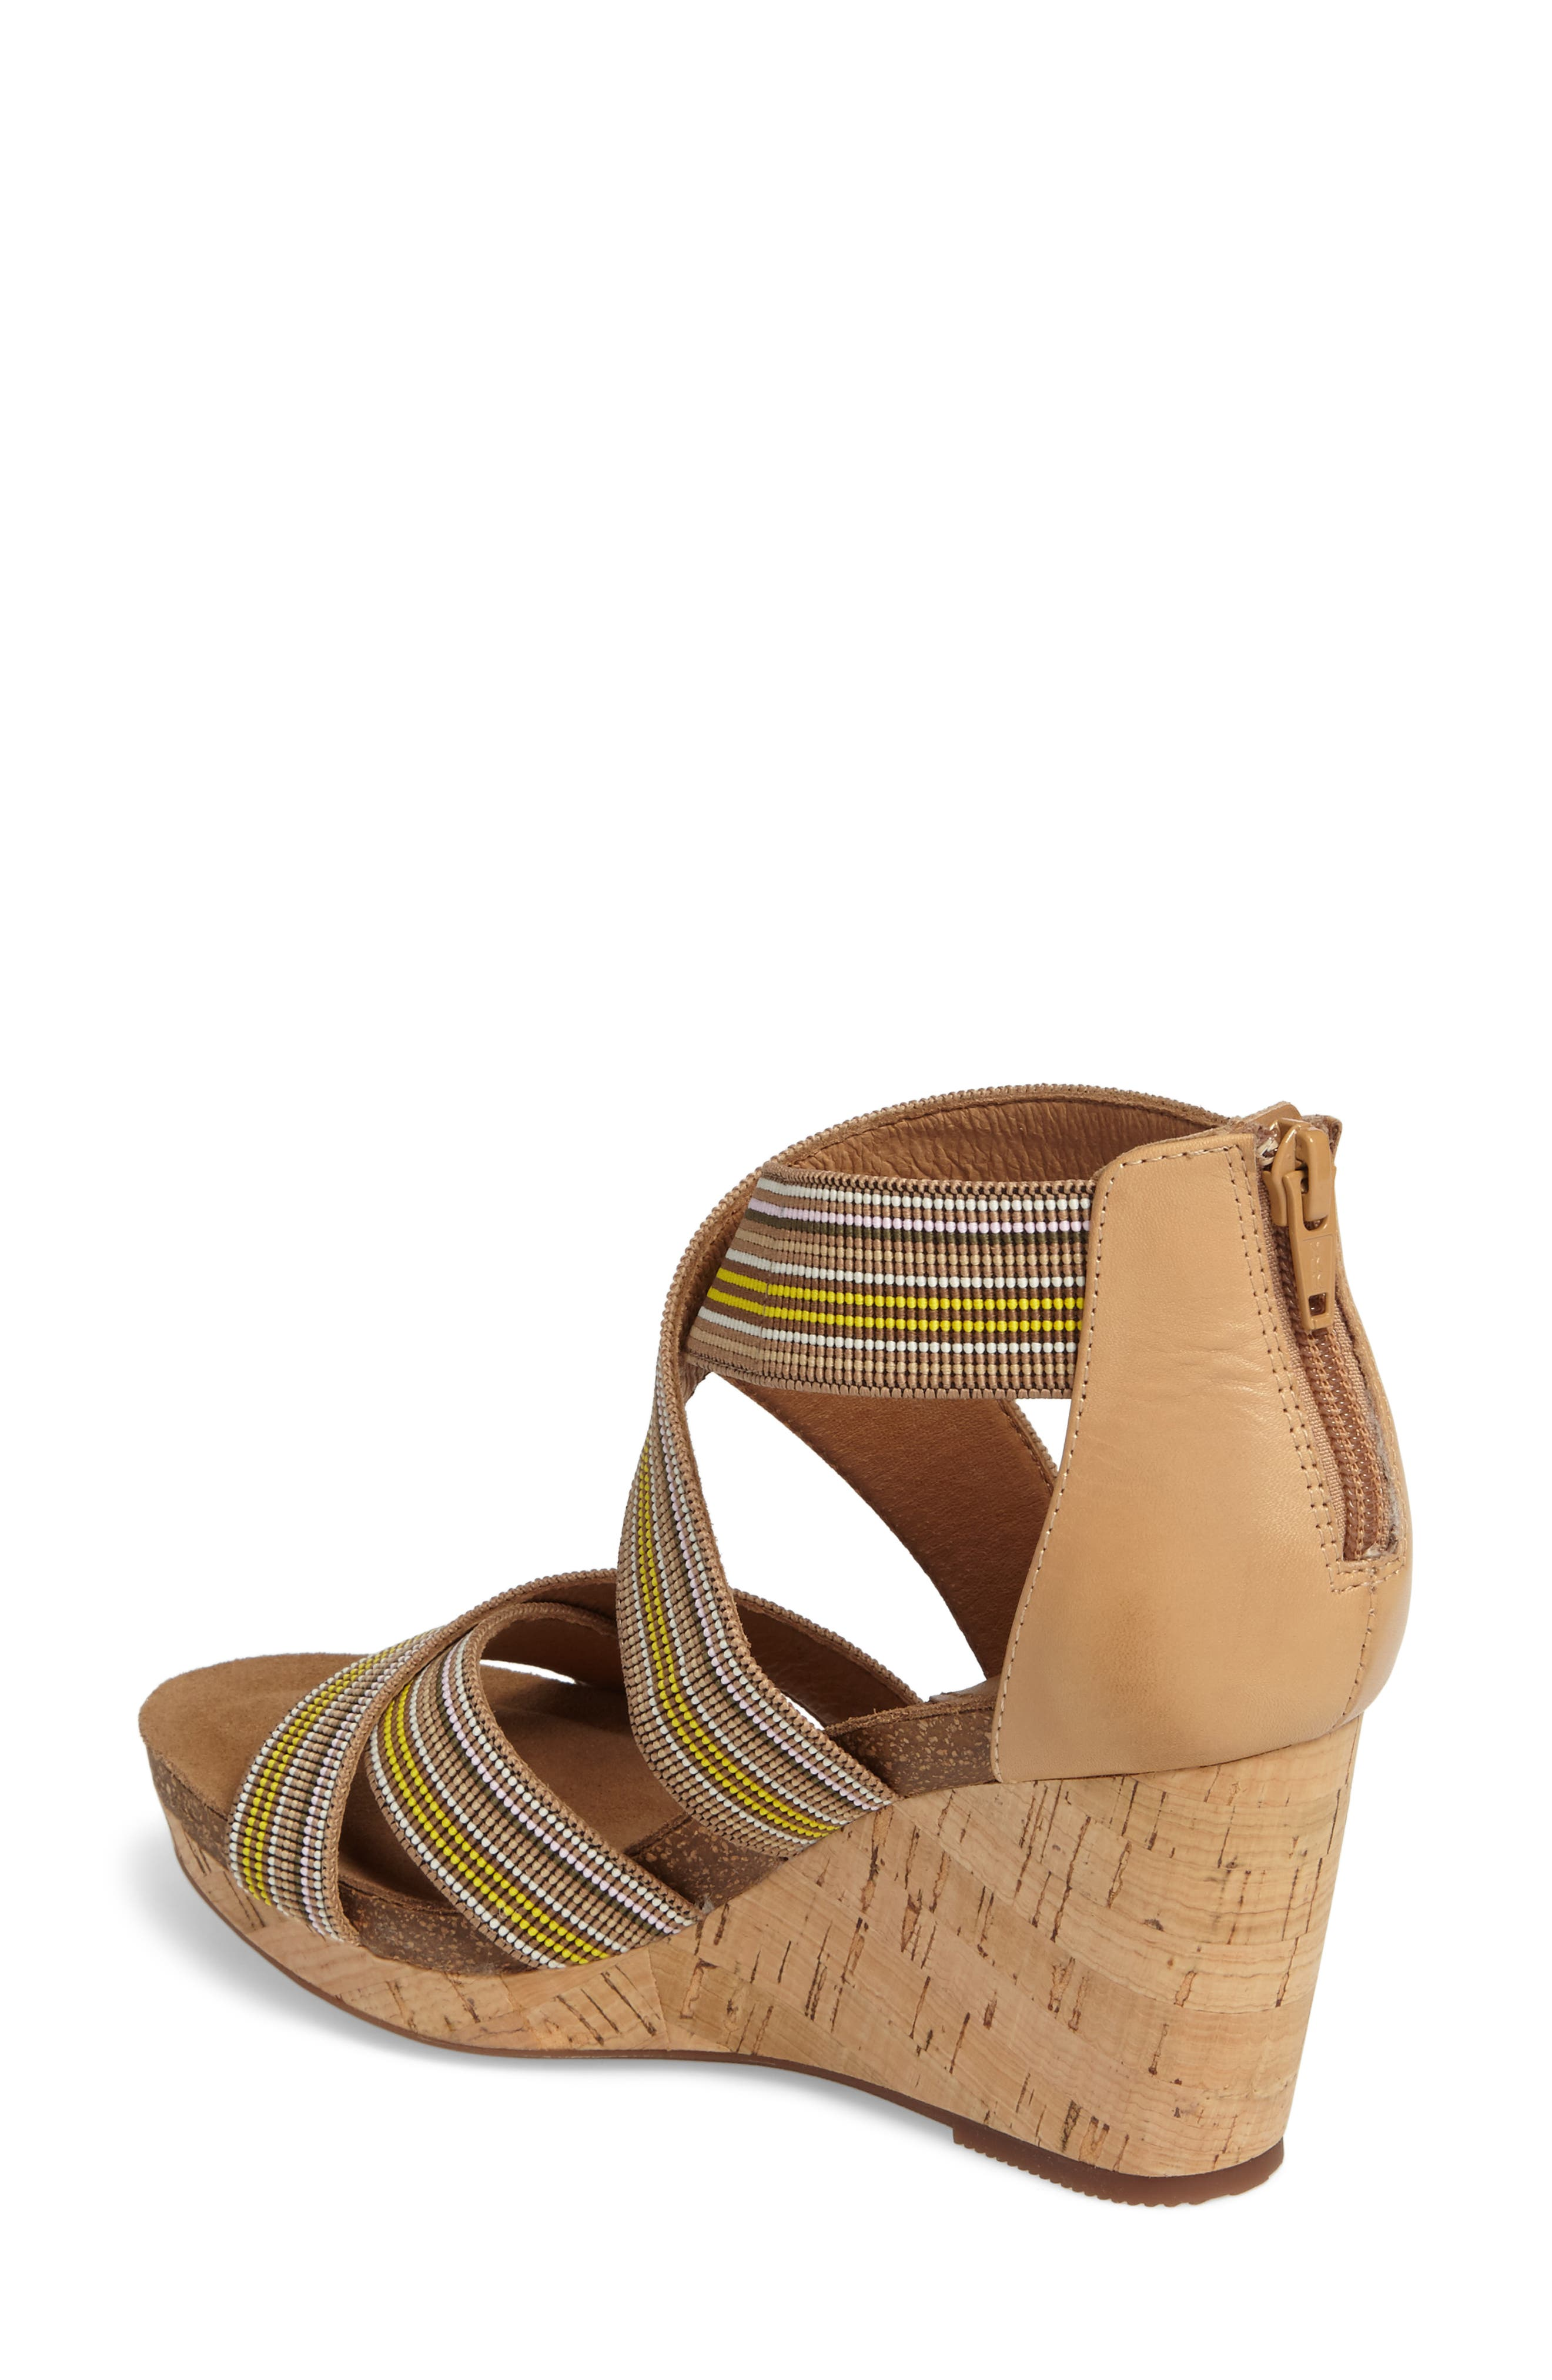 Alternate Image 2  - Söfft Cary Cross Strap Wedge Sandal (Women)